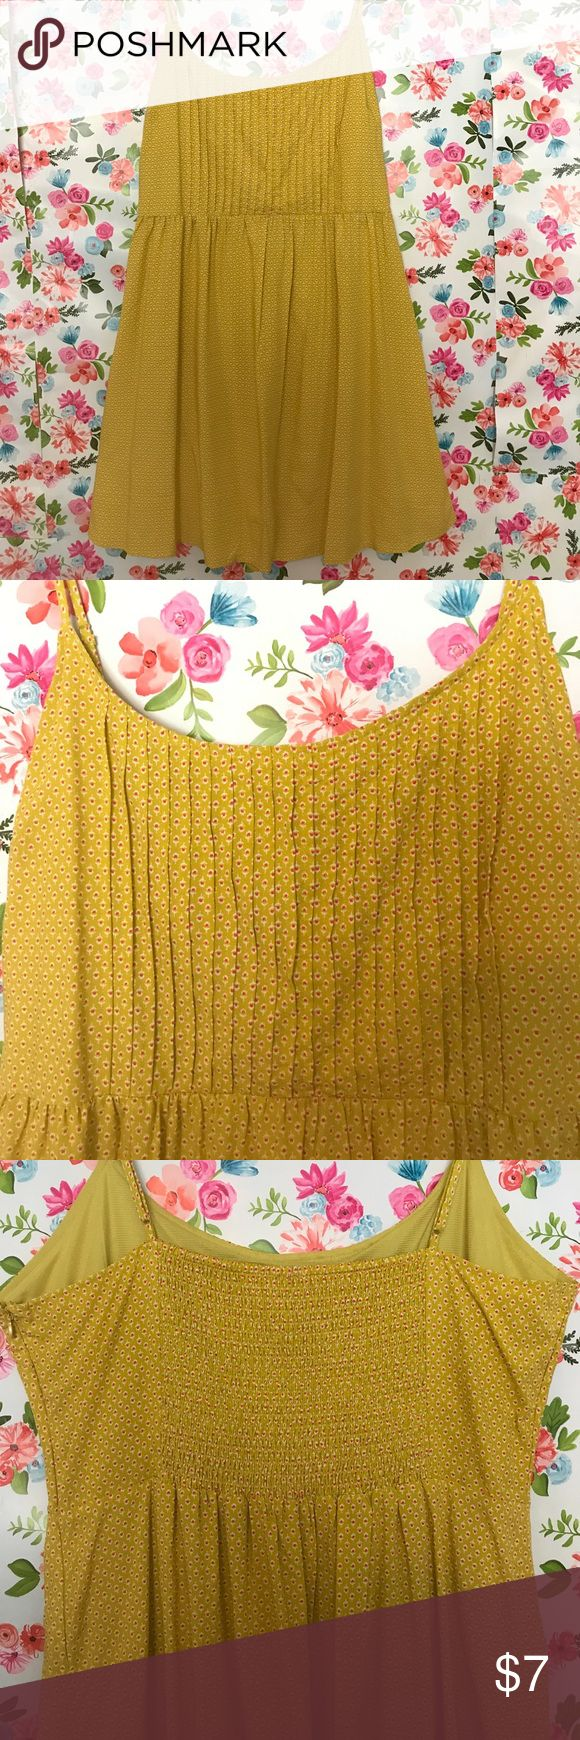 """Old Navy spaghetti strap yellow polka dotted dress This yellow (midway between """"canary"""" and """"mustard"""" 😉) dress would be perfect for summer cook outs or could even be paired with a light cardigan and cowboy boots for tailgating in the fall. It is patterned with pink polka dots and features a ribbed back to provide some extra room if needed. Straps are adjustable, hidden side zipper with eyelet closure. Size XL, but fits more like a XXL. Old Navy Dresses Midi"""